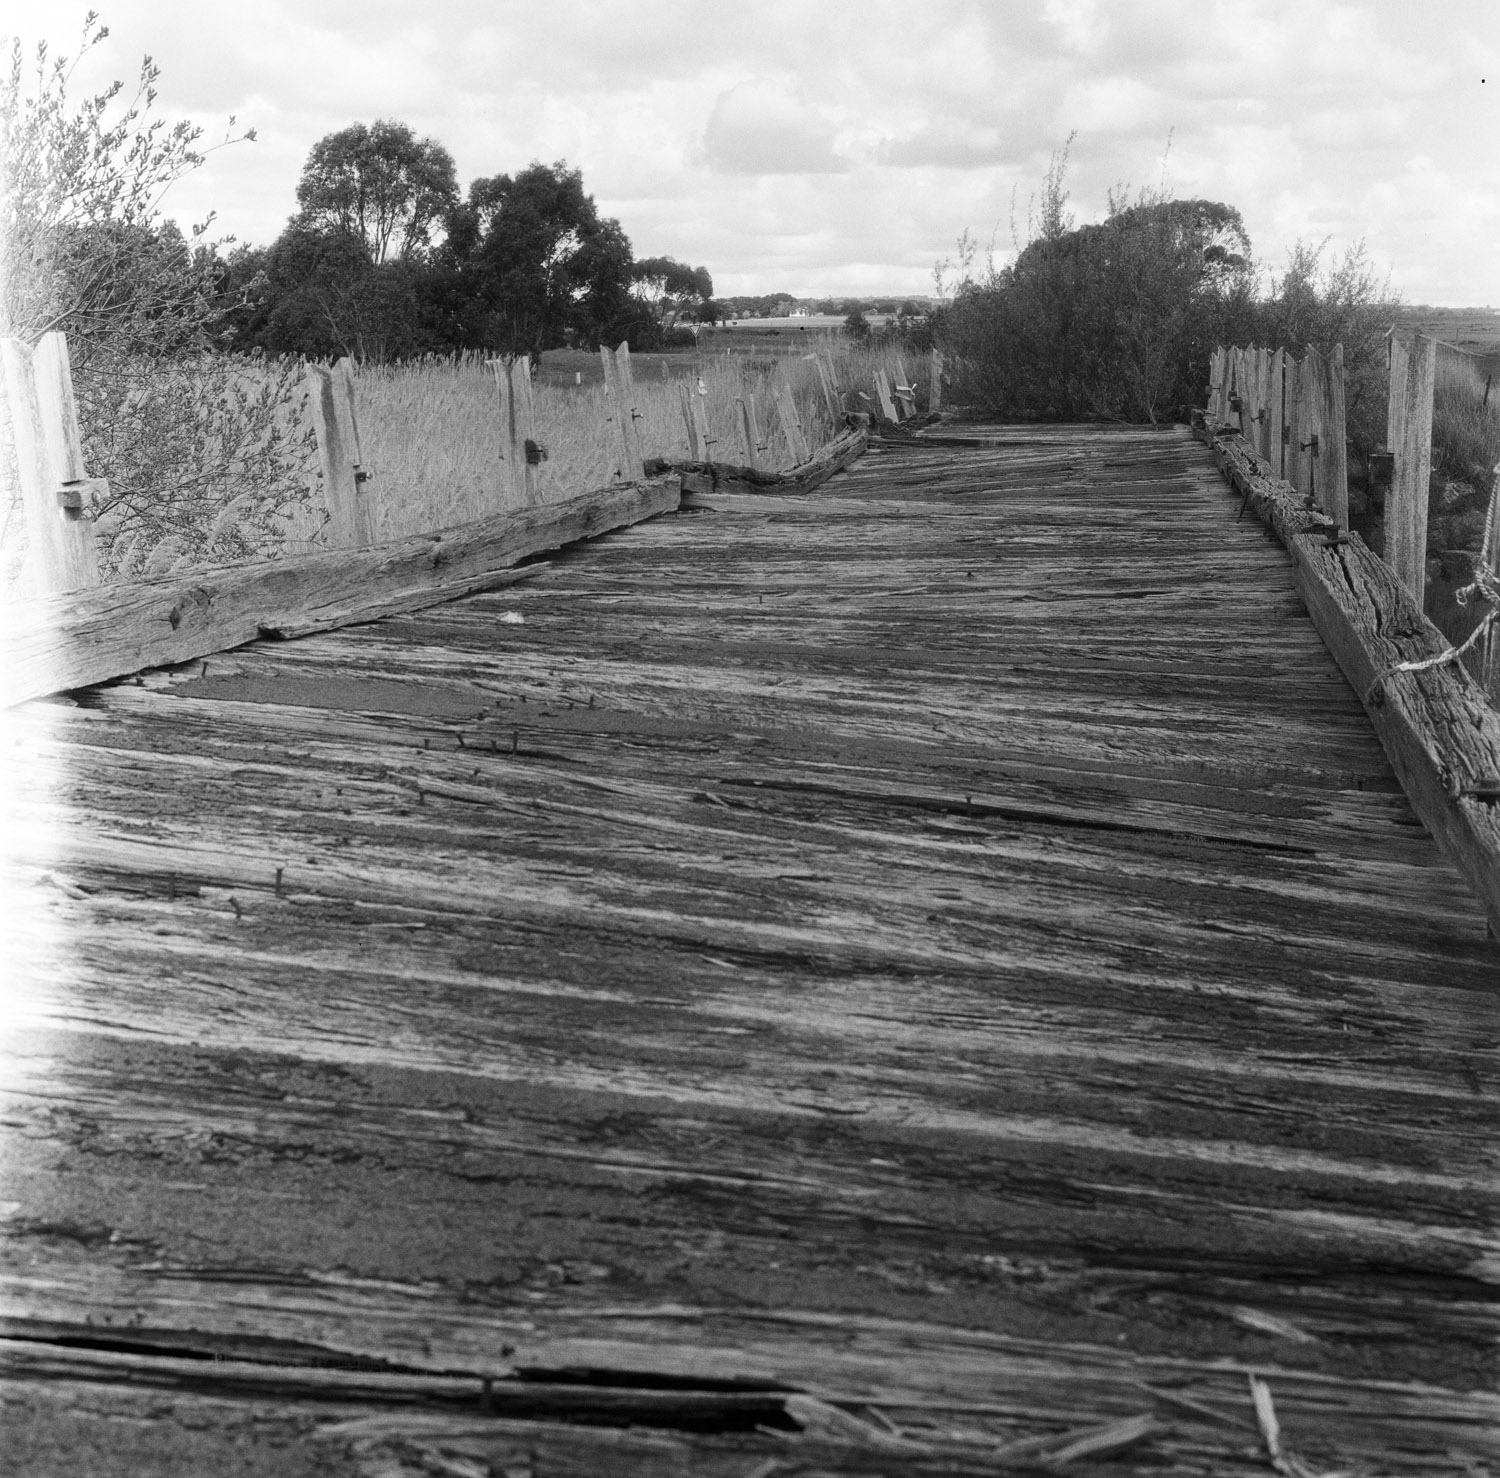 Remains of a bridge  Film: Kodak Tri-X Lens: 80mm f/2.8 Exposure:  not recorded  Near Lancefield, Vic, Australia.